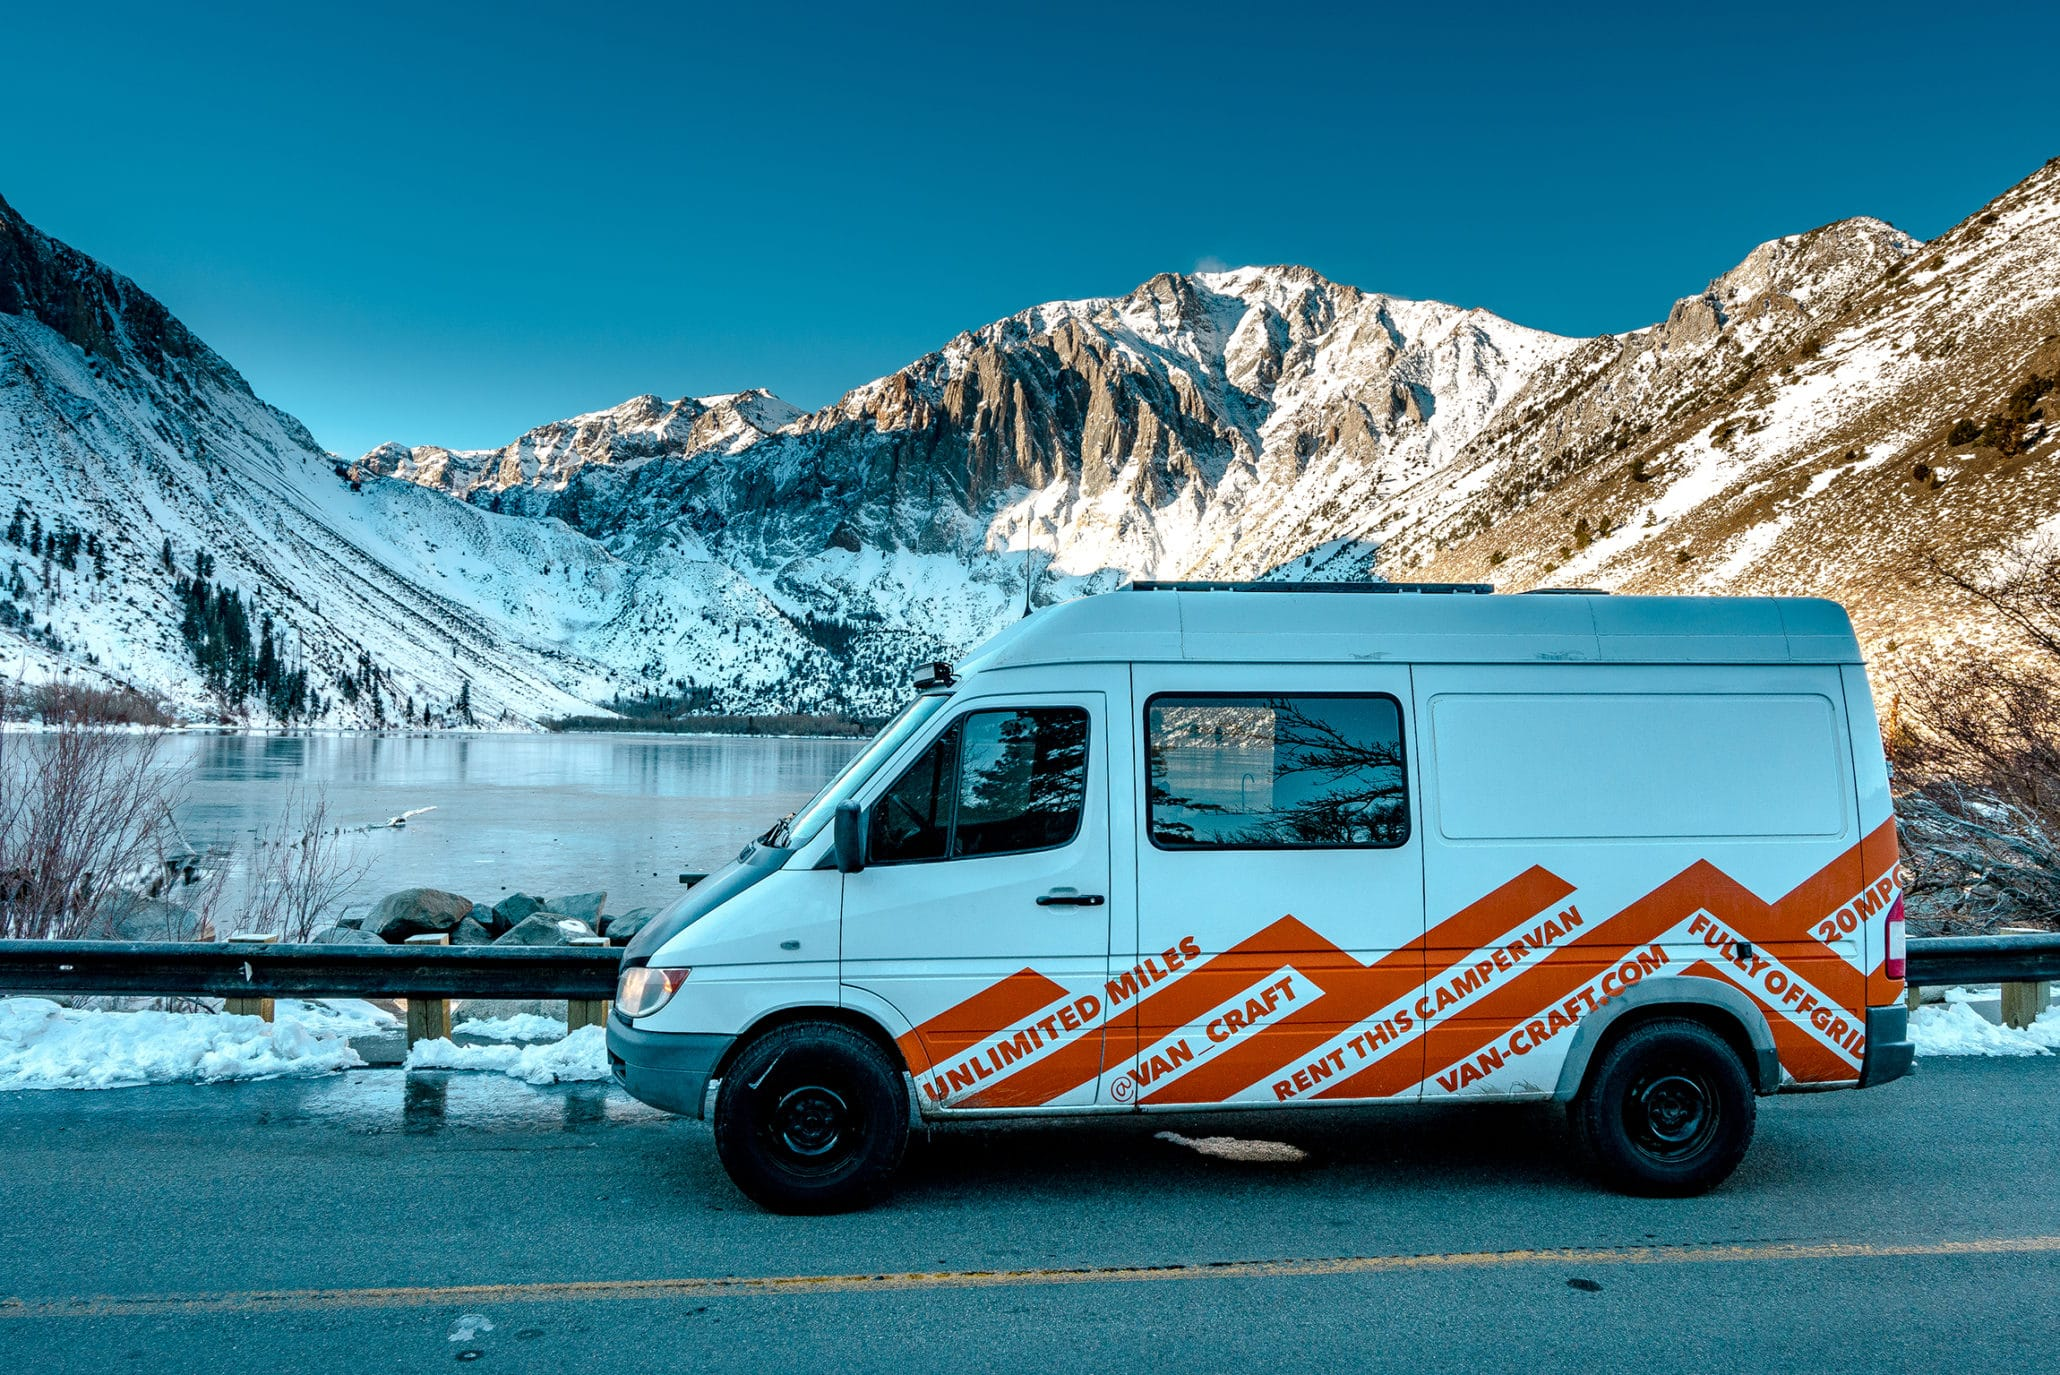 unreal view of convict lake in winter from a campervan